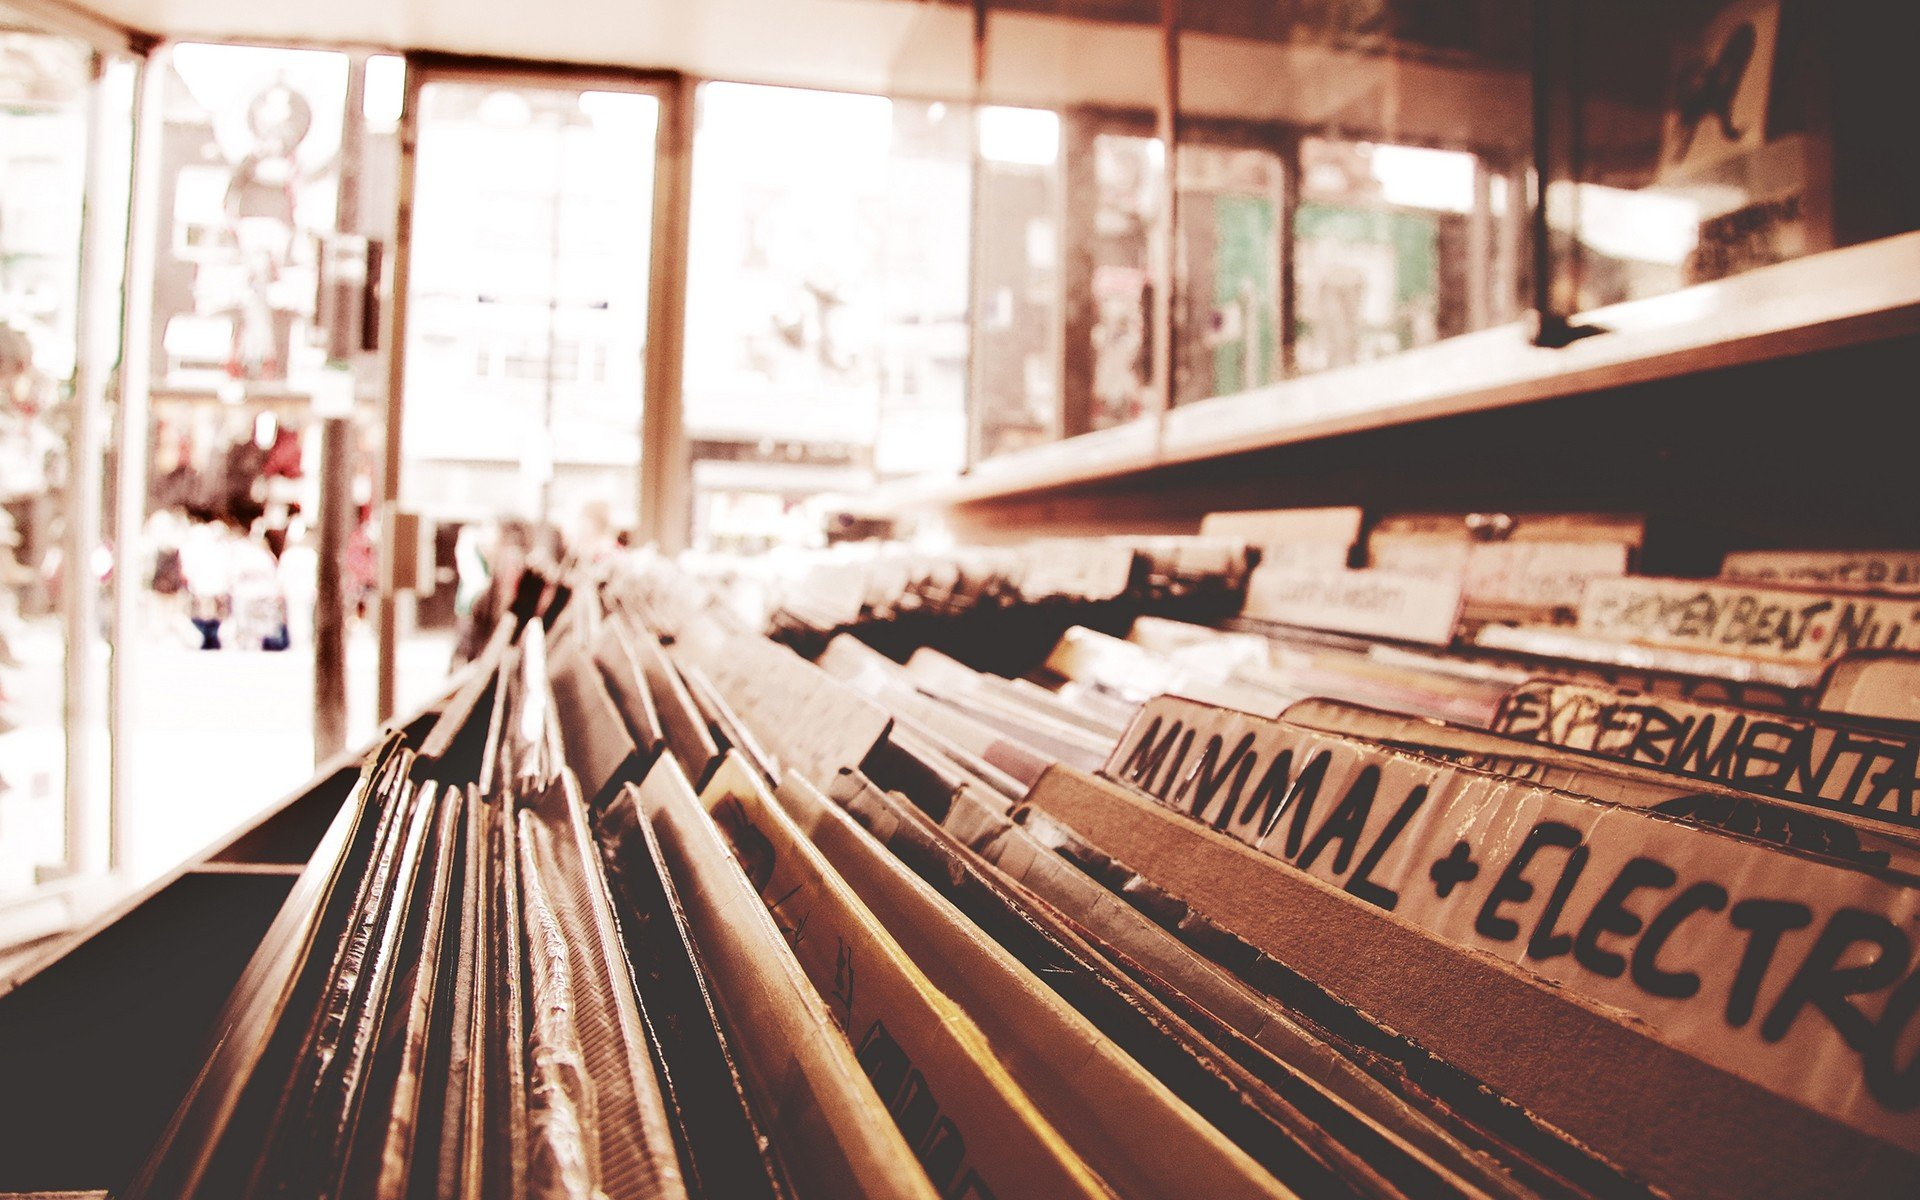 LRS - Learning Record Store